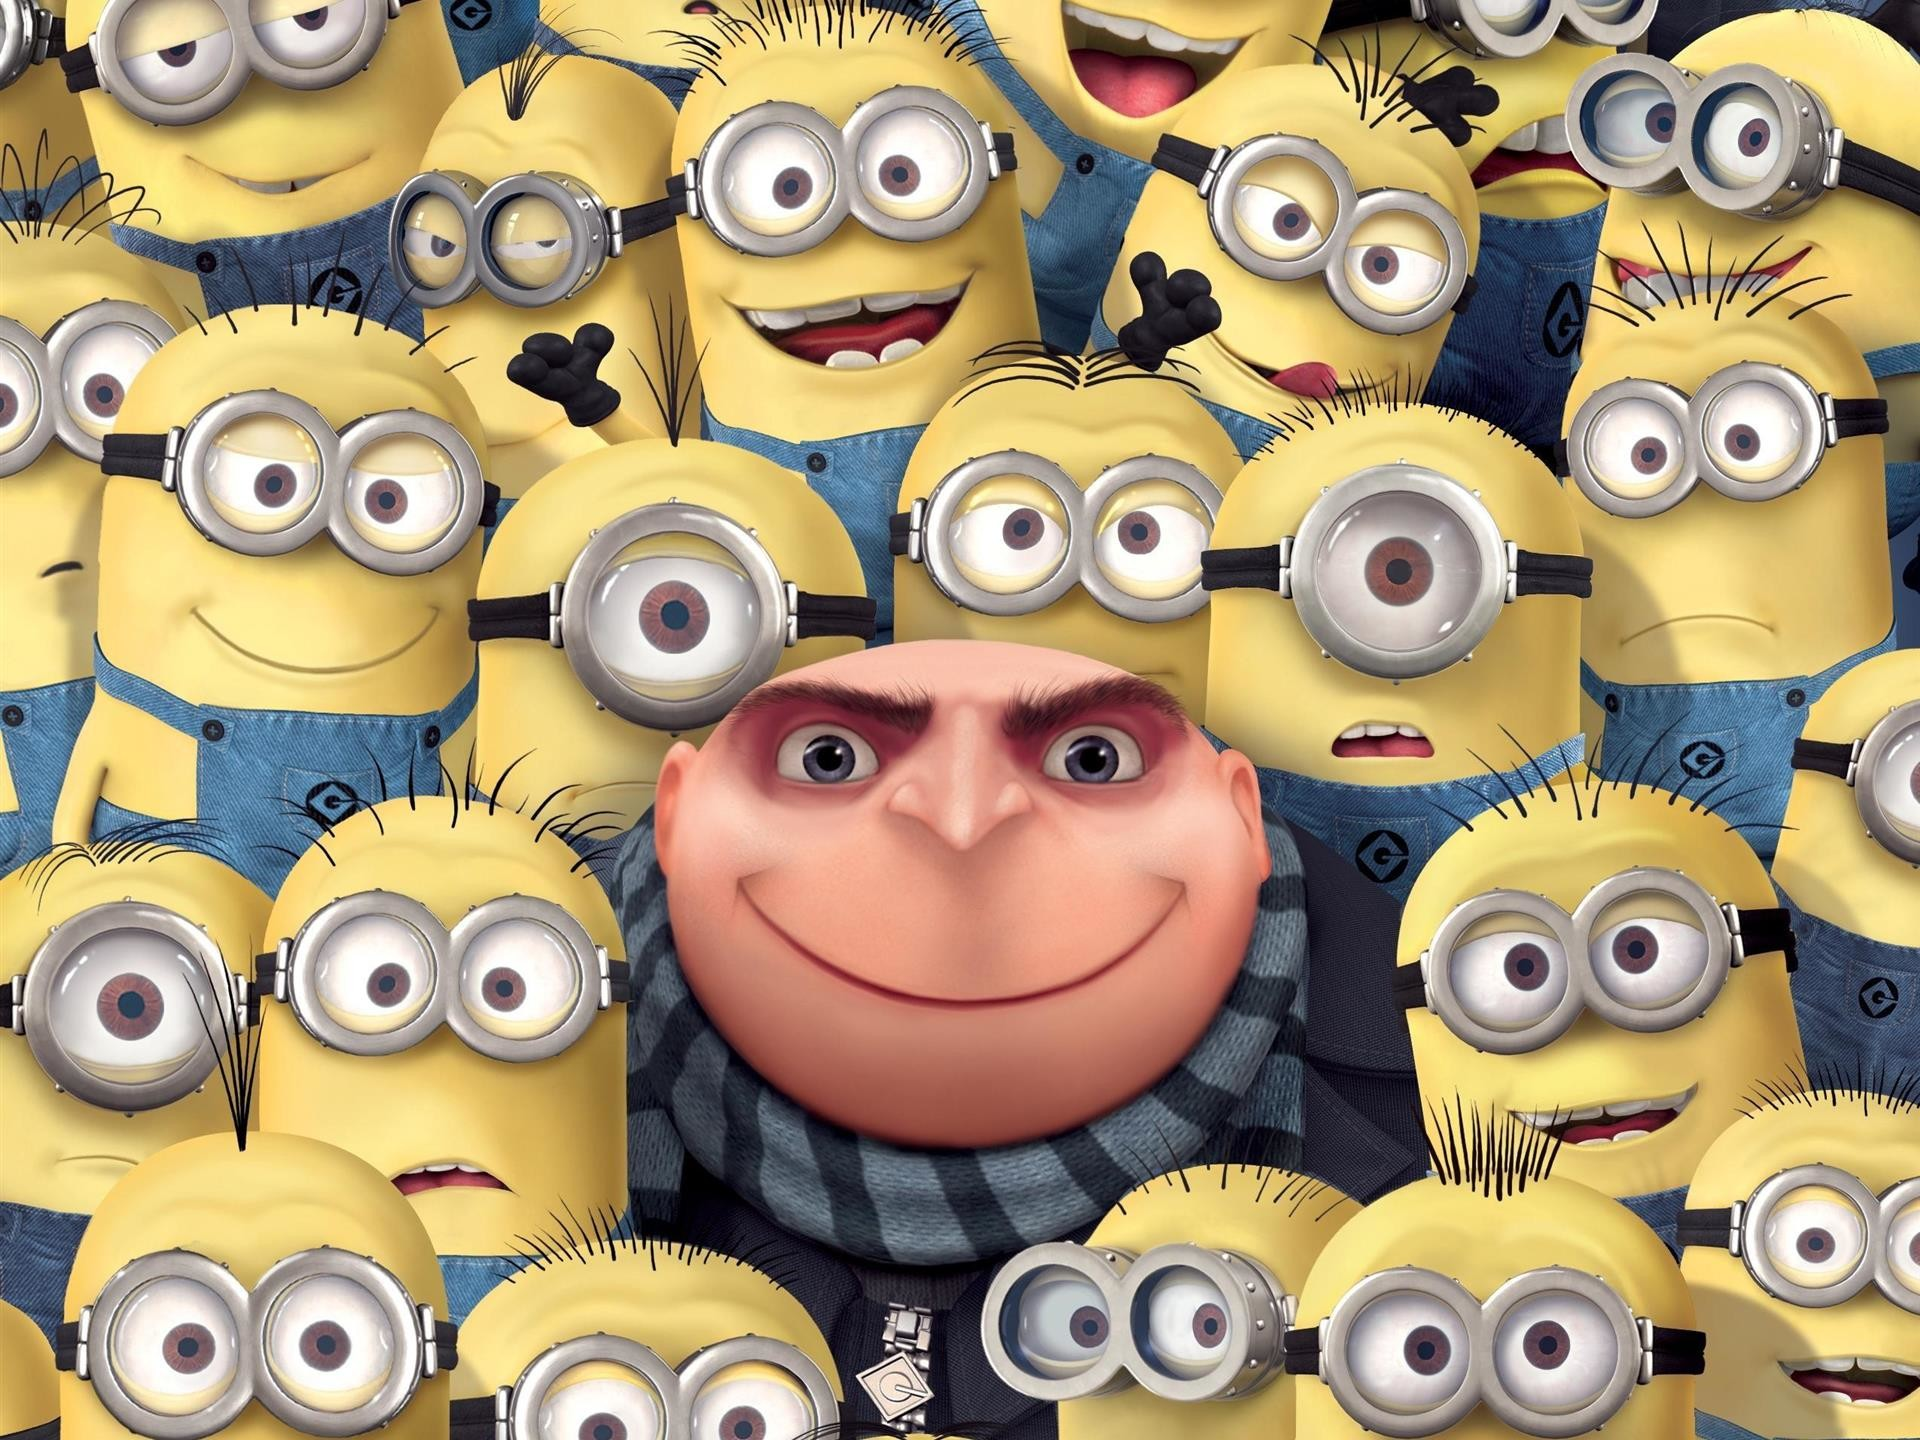 2560x1473 Gru HD Wallpapers Backgrounds Wallpaper 2560A 1473 Minions Despicable Me 38